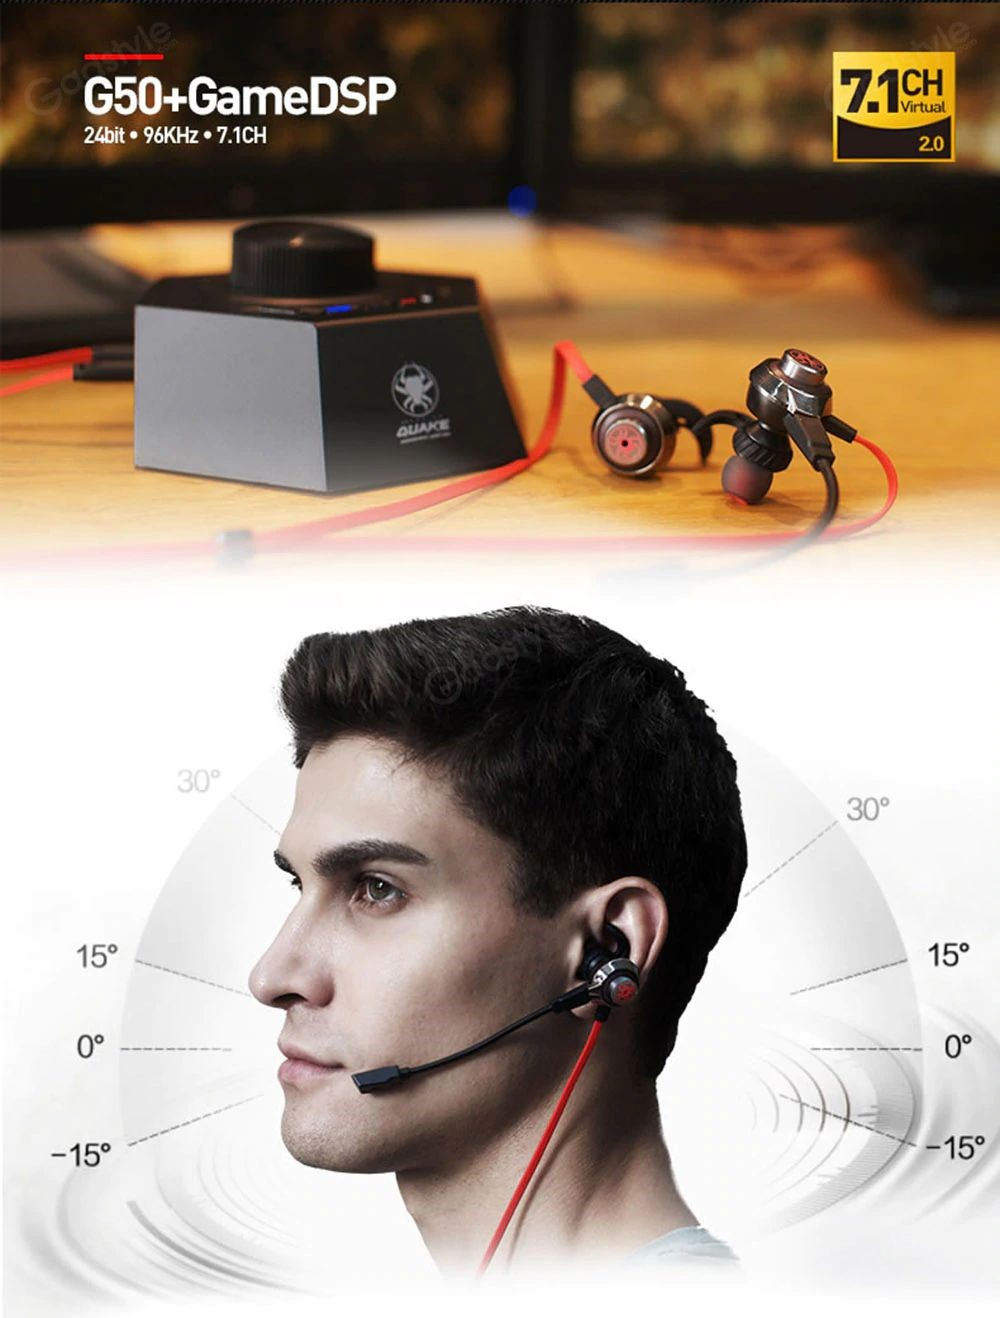 Plextone G50 With Gamedsp Quake Vibration Gaming Earphones (7)